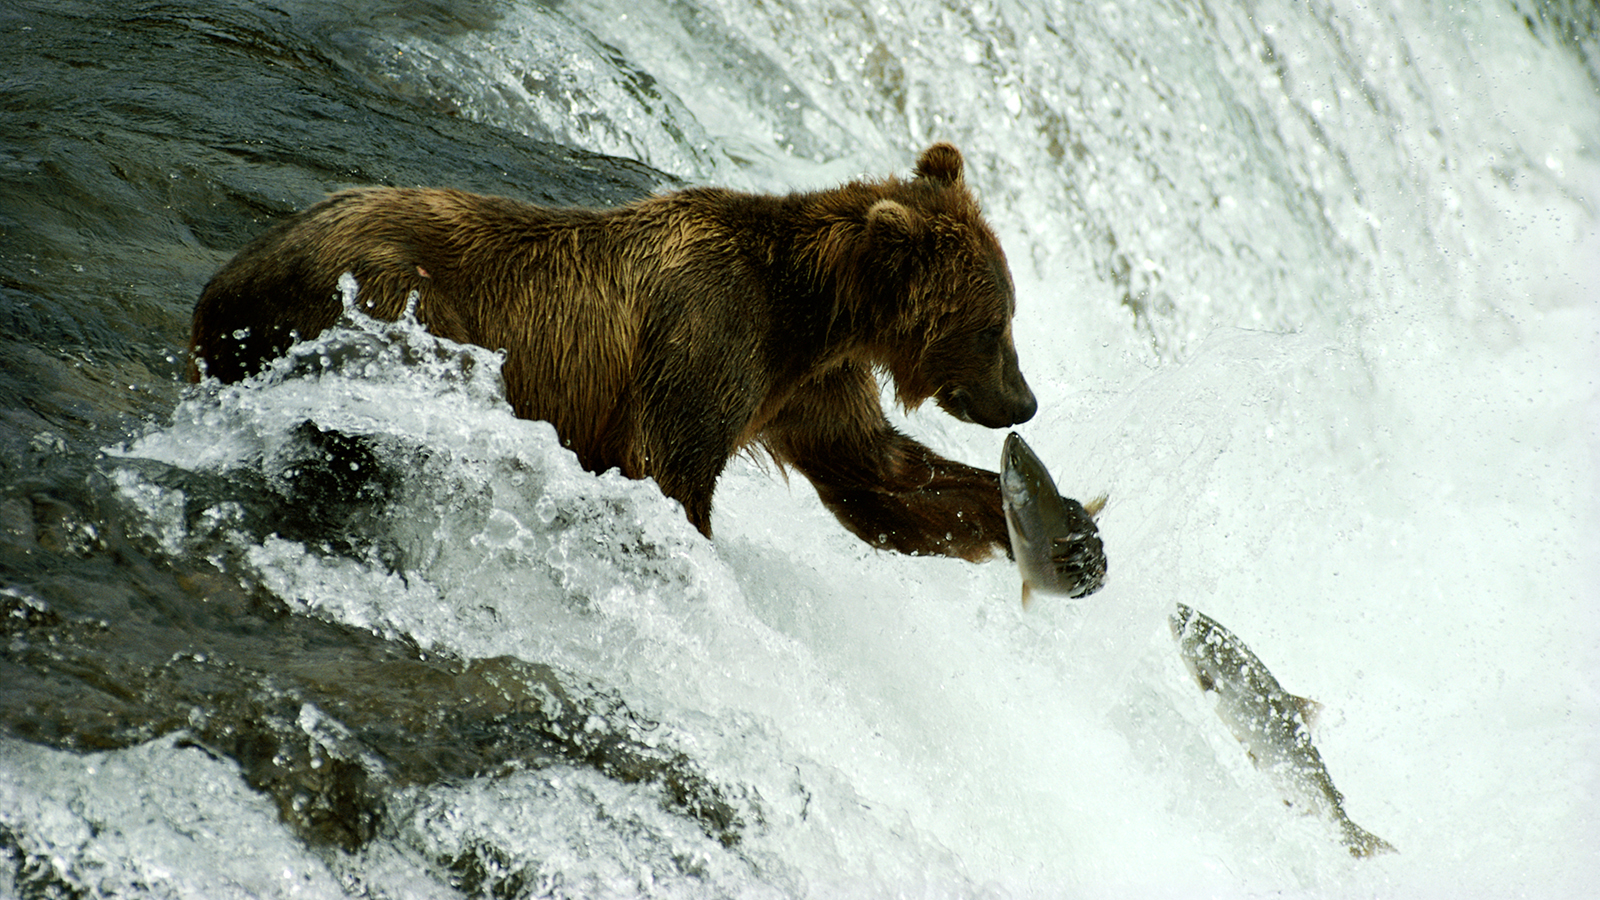 A grizzly bear eat almost 20,000 calories a day.